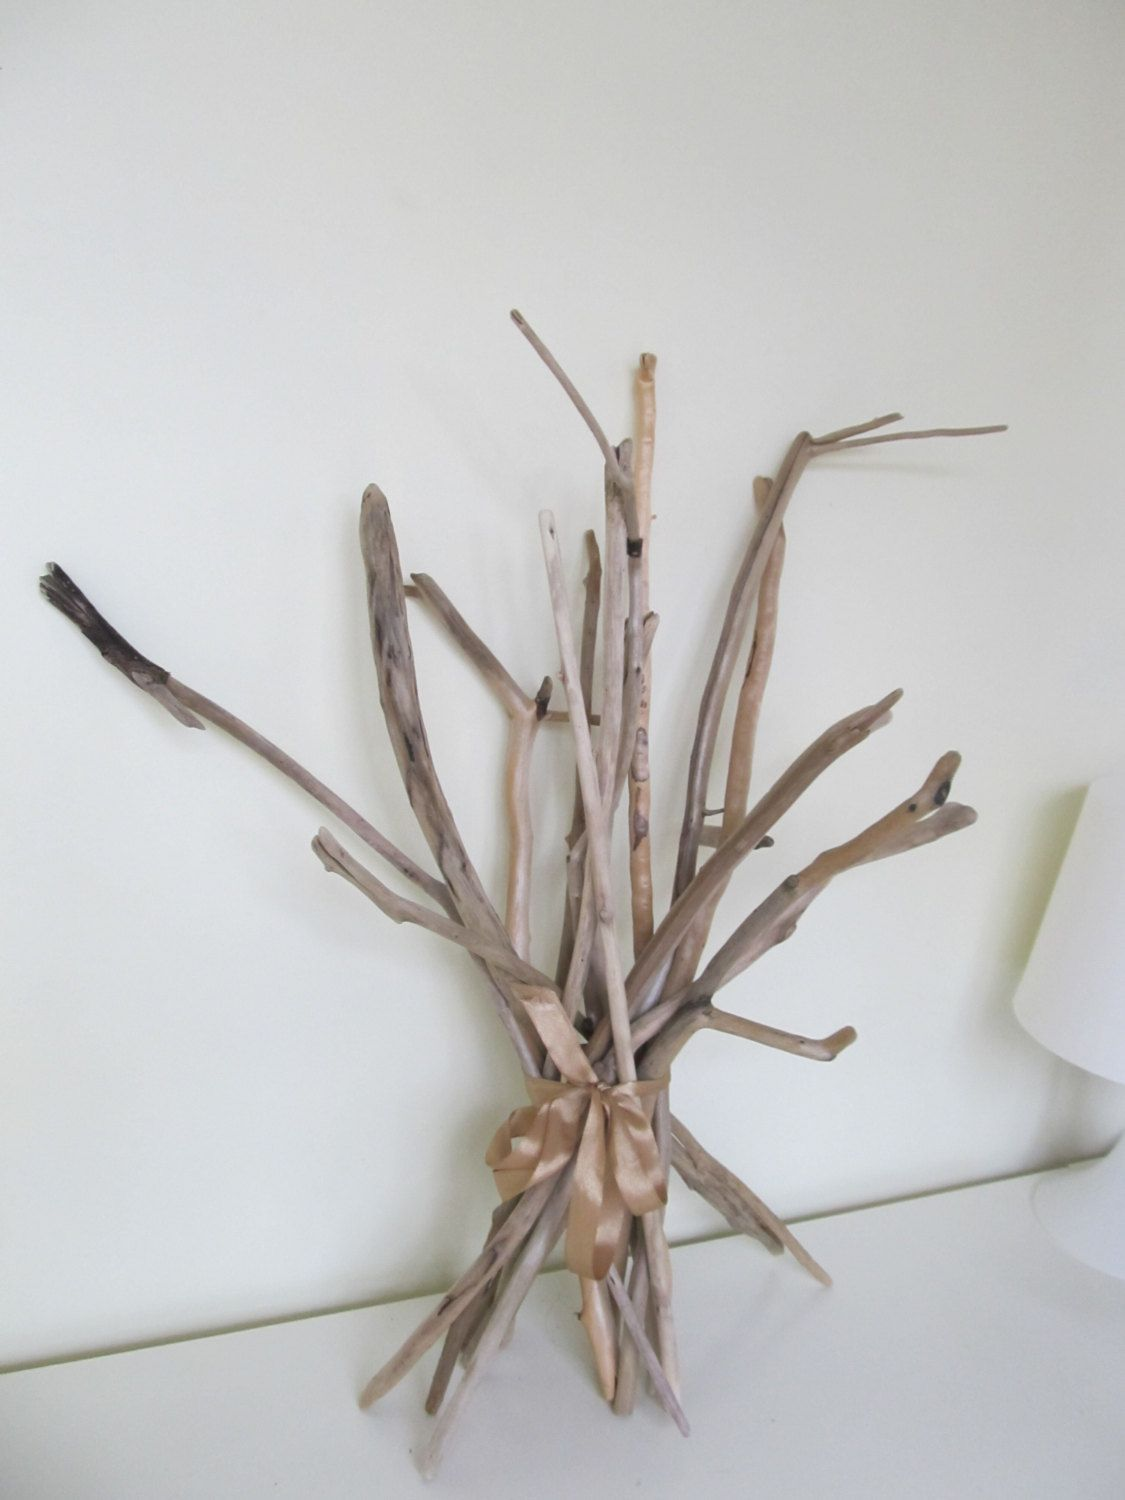 Smooth driftwood twigs vase filler odd shaped driftwood branches smooth driftwood twigs vase filler odd shaped driftwood branches vase filler drift wood by lonelybeach on reviewsmspy